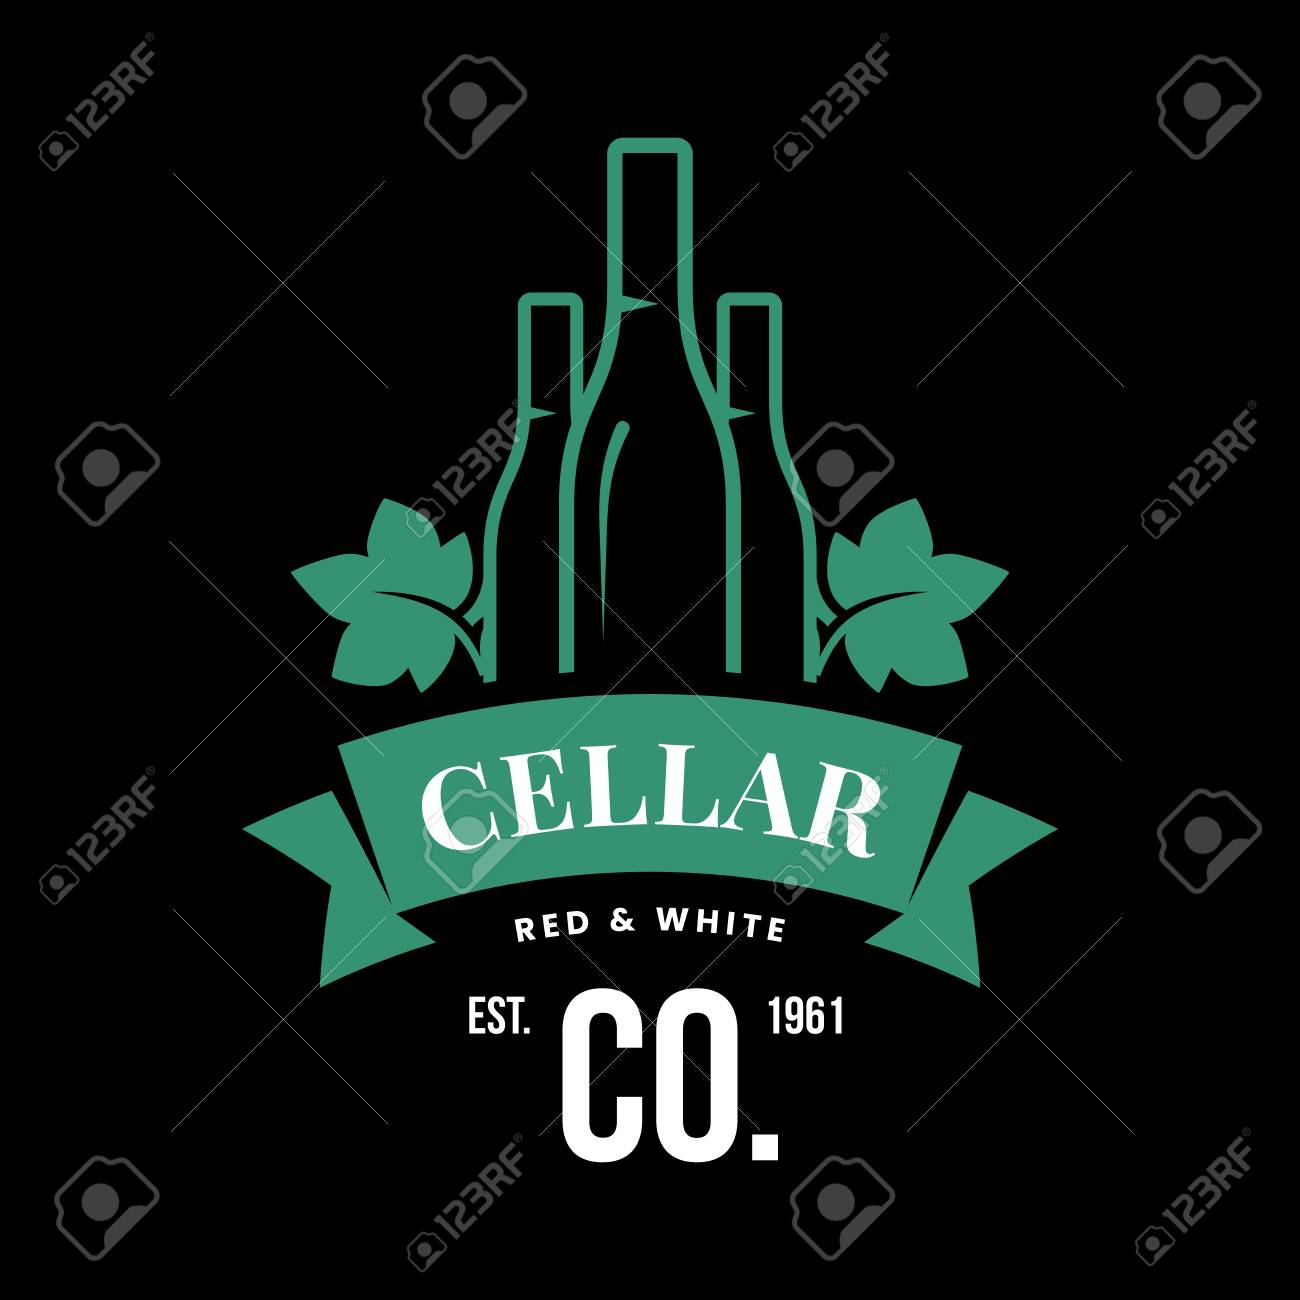 Modern wine vector logo sign for tavern, restaurant, house, shop, store, club and cellar isolated on black background. Premium quality vinery logotype illustration. Fashion brand badge design template. - 126498901